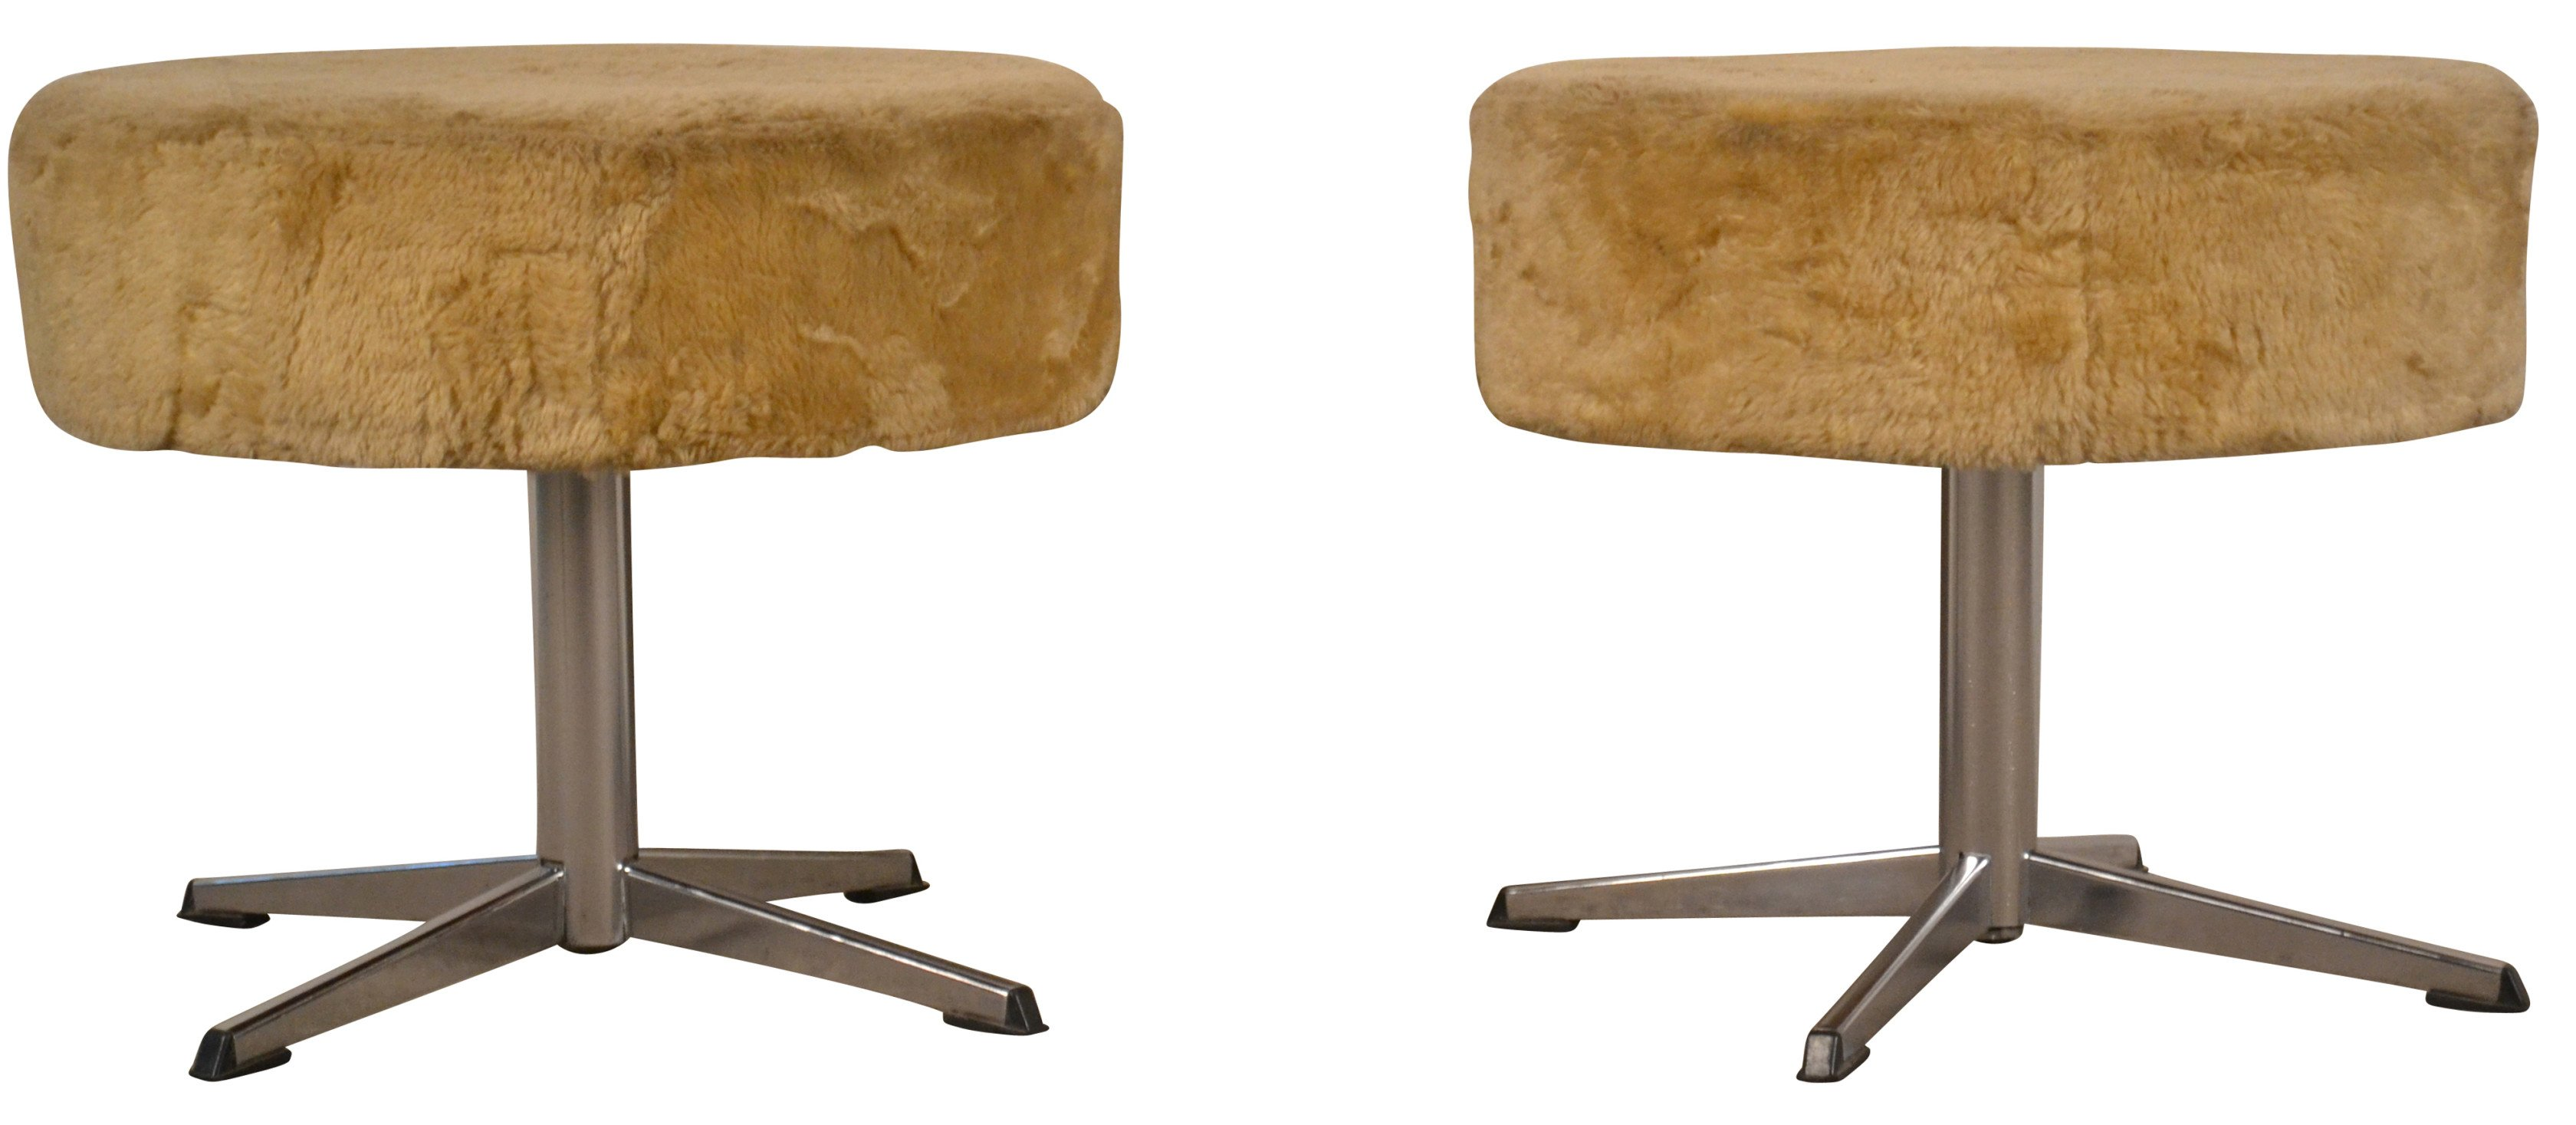 Pair of Stools, 1970s